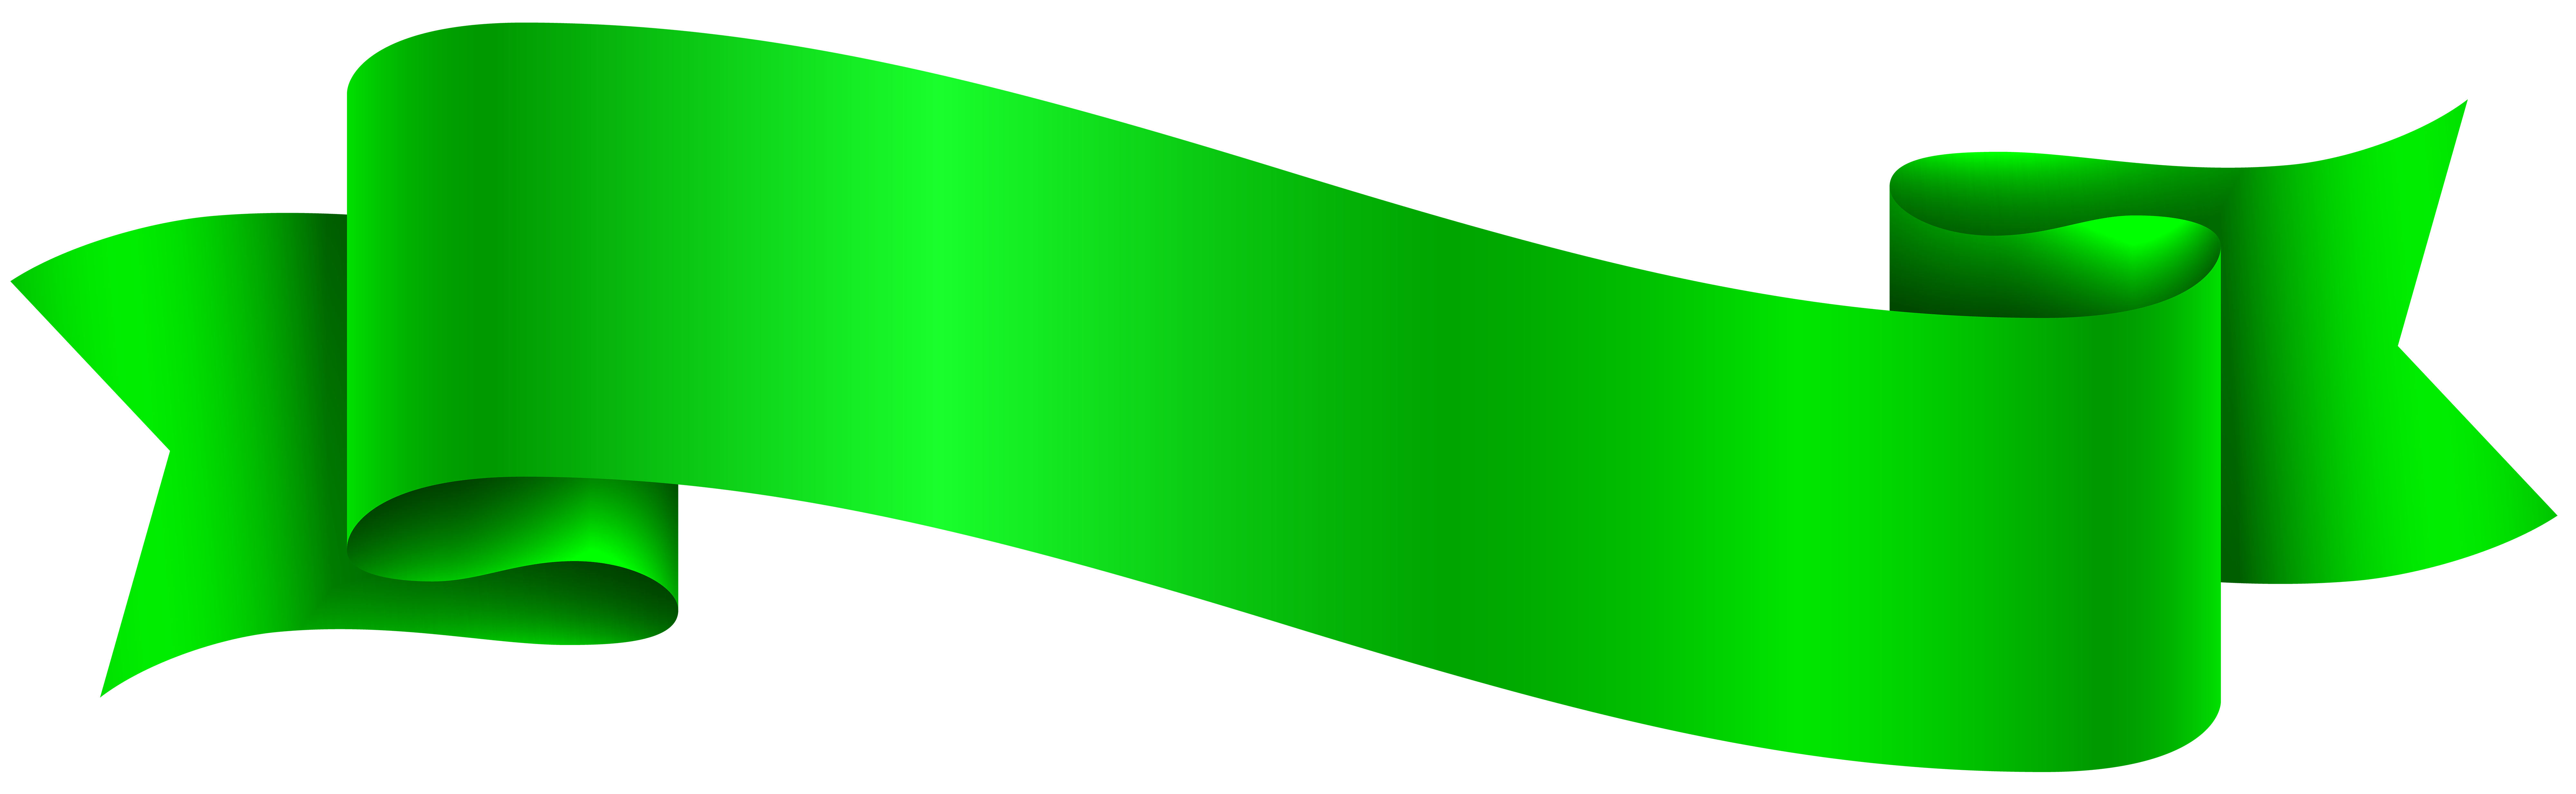 Youtube clipart professional. Green banner transparent png